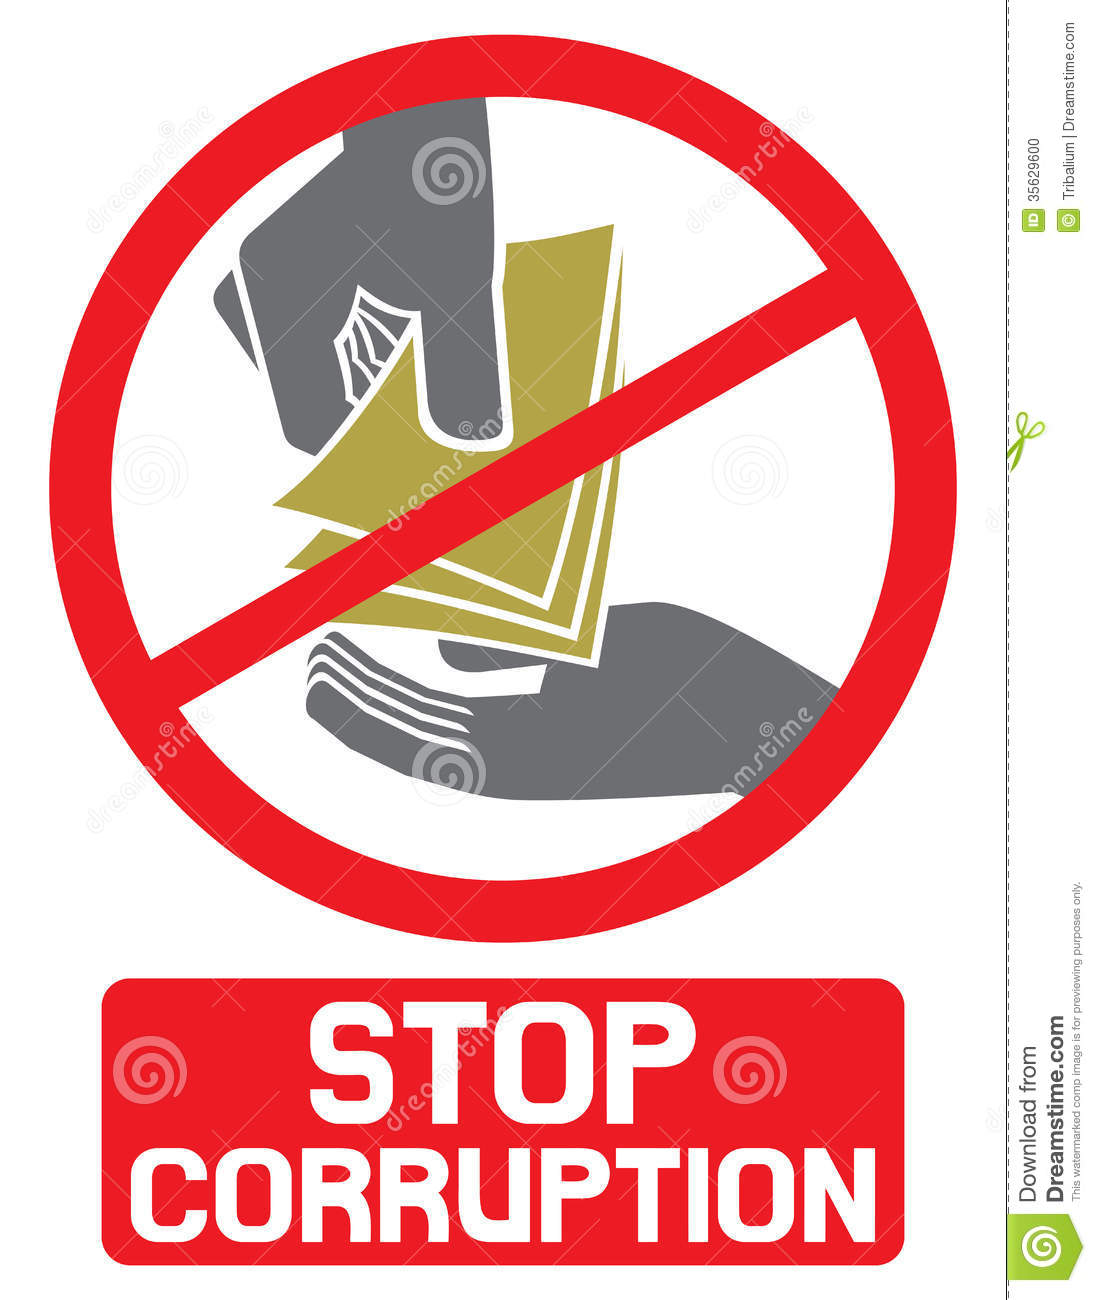 Stop Corruption Sign Stock Photo Image 35629600